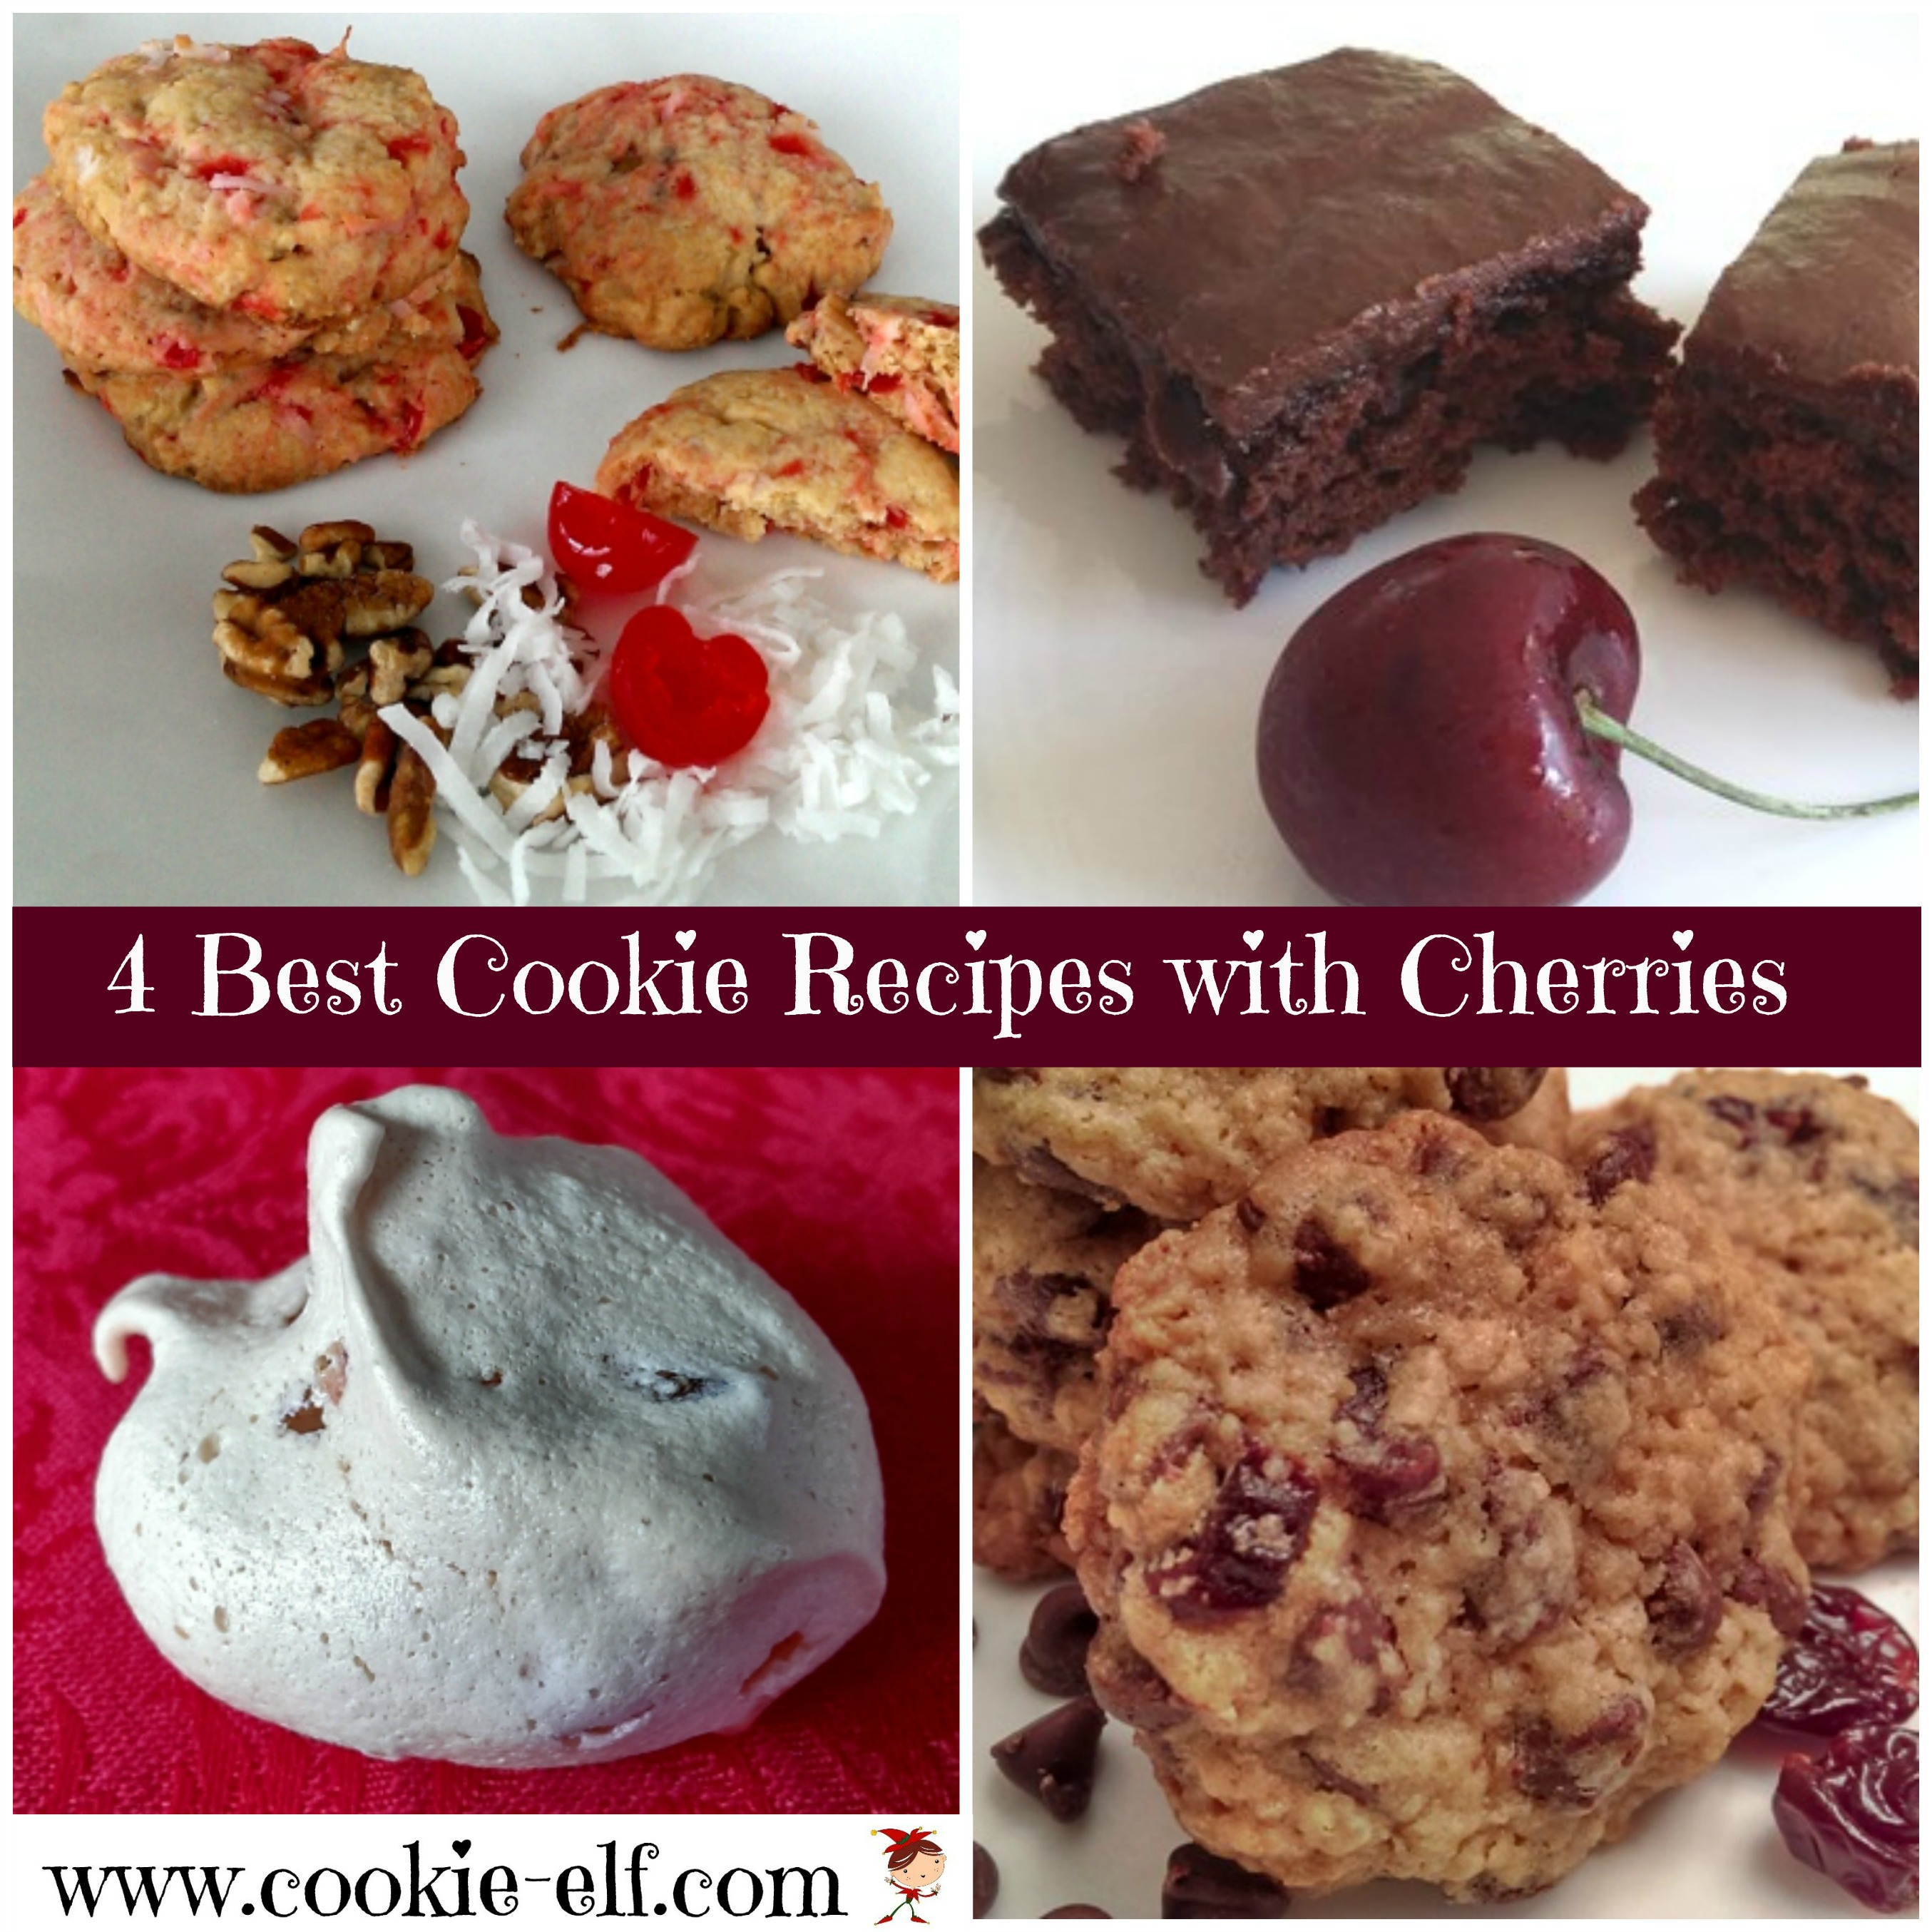 4 Best Cookie Recipes with Cherries